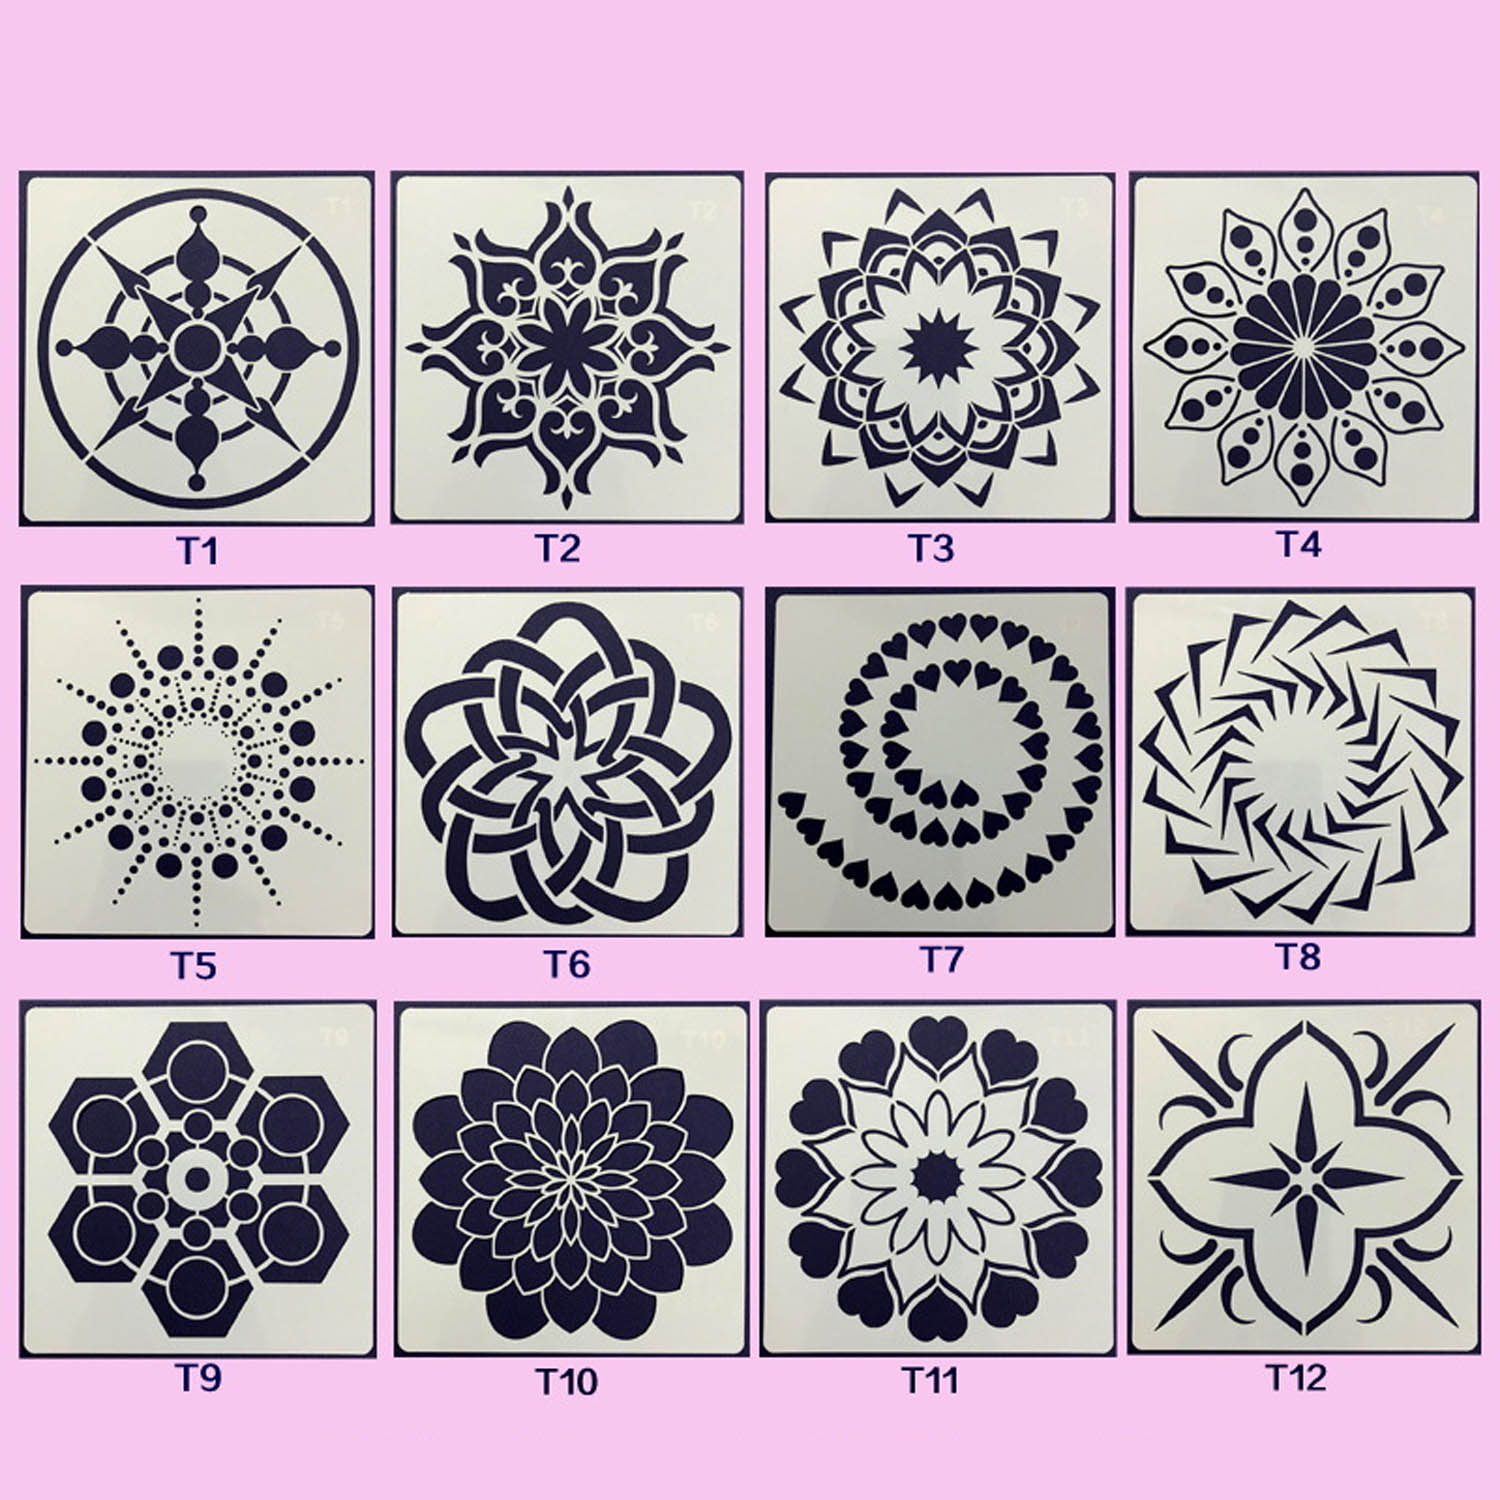 12pcs Mandala Dotting Templates Stencil Tools Set For DIY Painting Drawing Drafting Art Craft Projects Canvas Rocks Fabrics Art